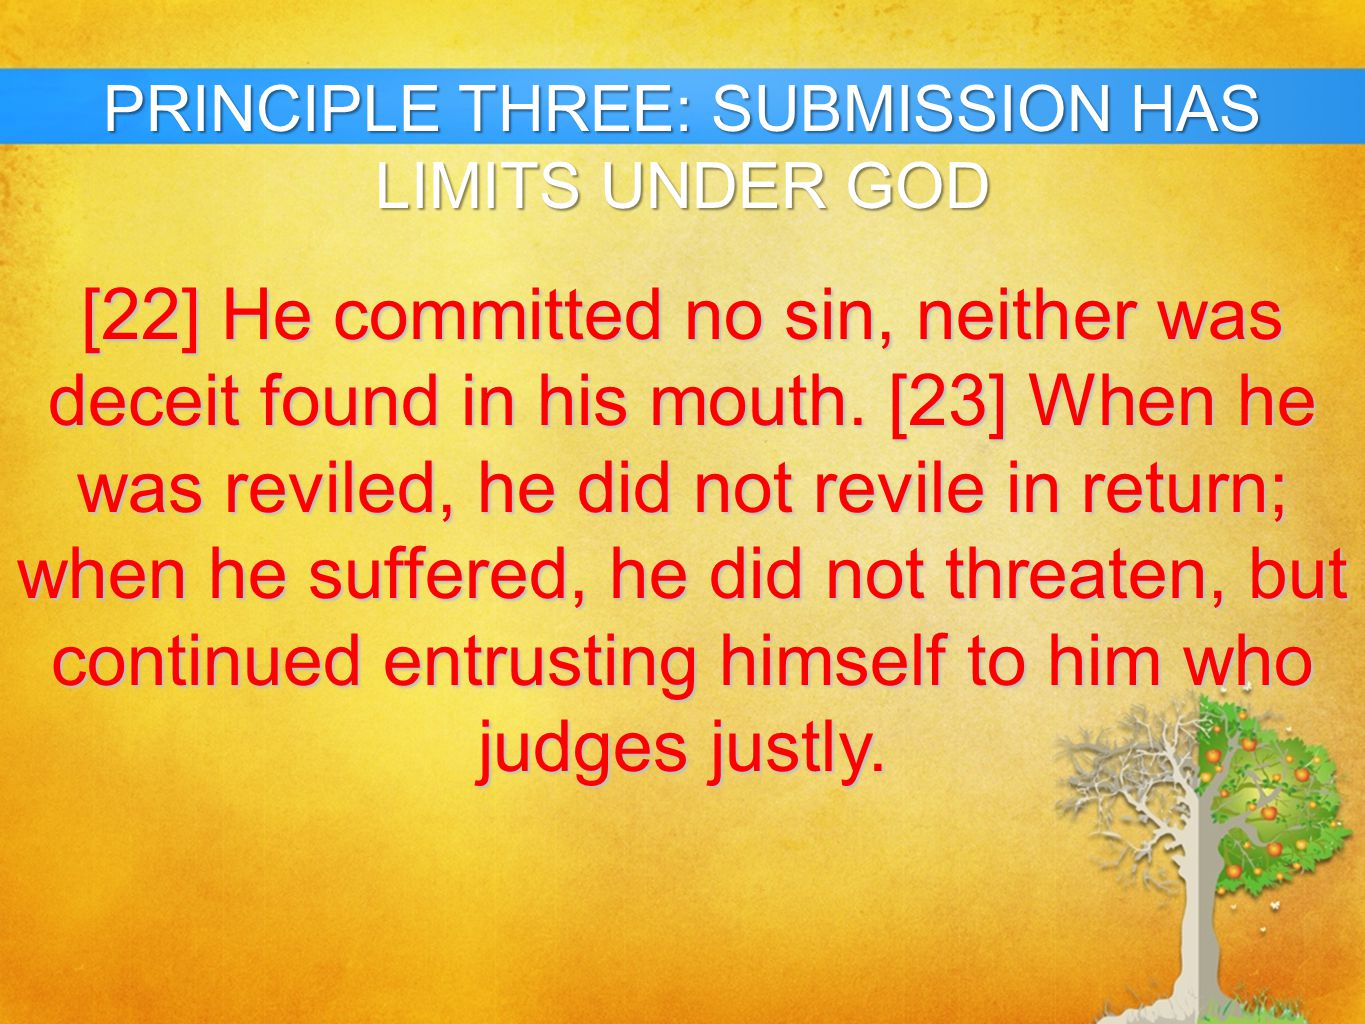 PRINCIPLE THREE: SUBMISSION HAS LIMITS UNDER GOD